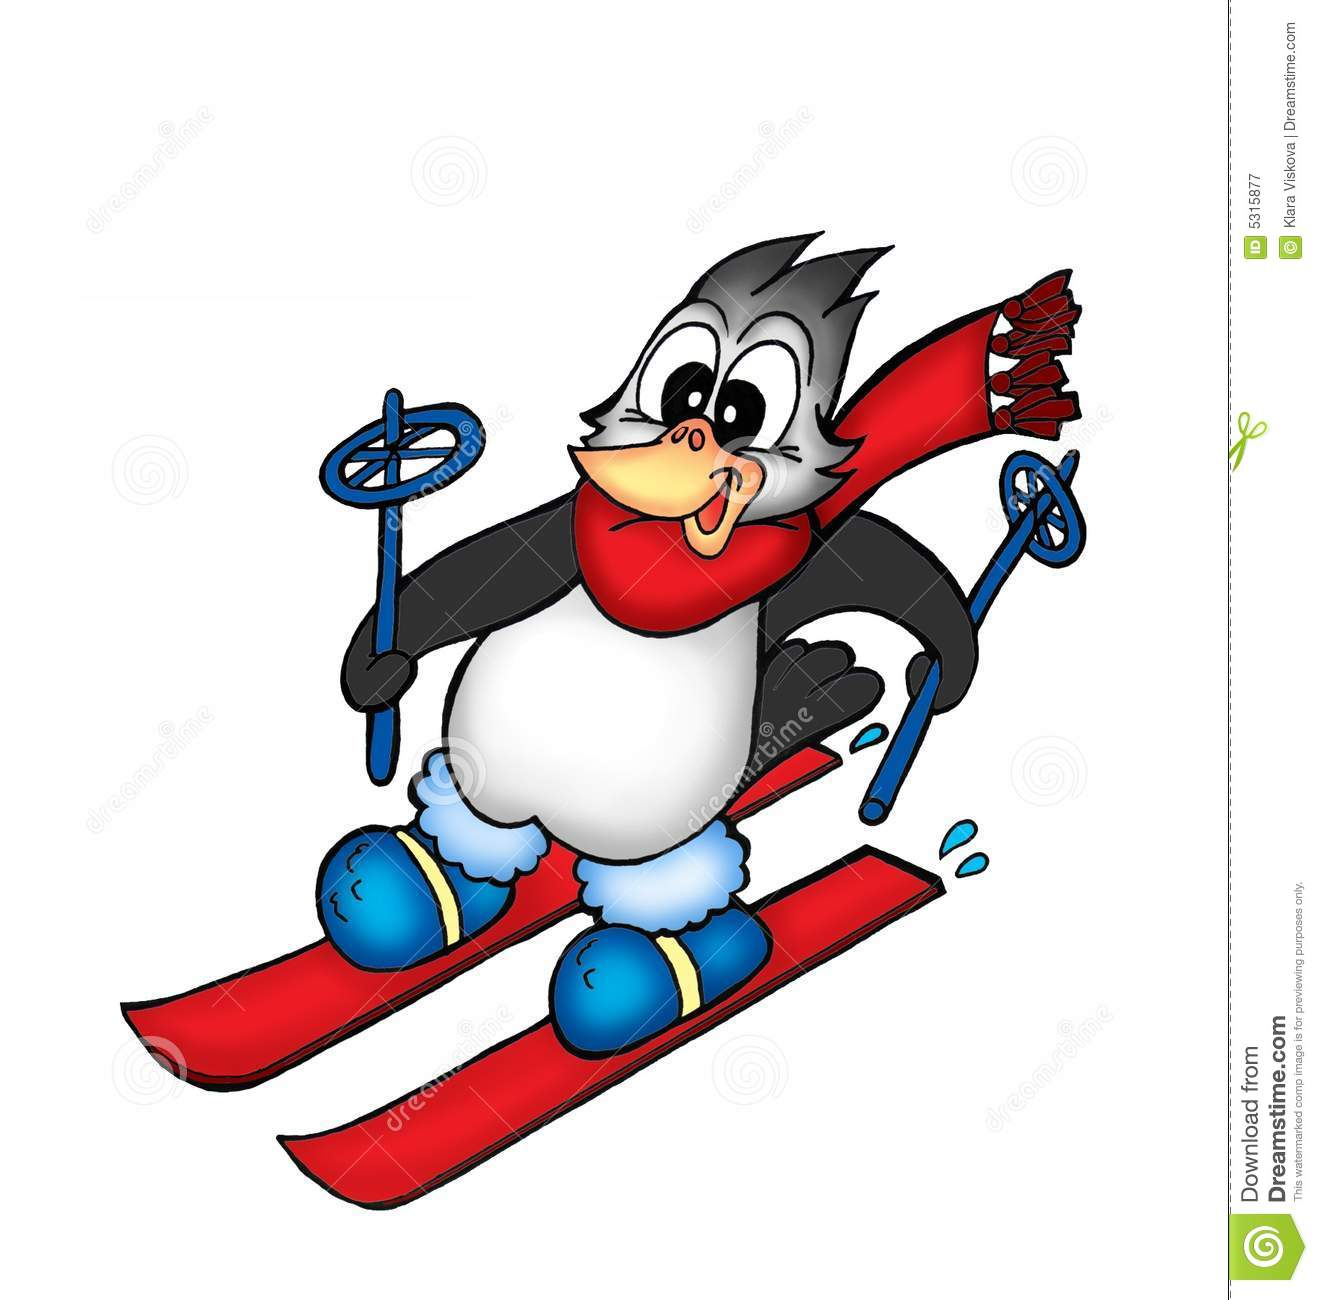 Snow Funny Cartoon About Skiing